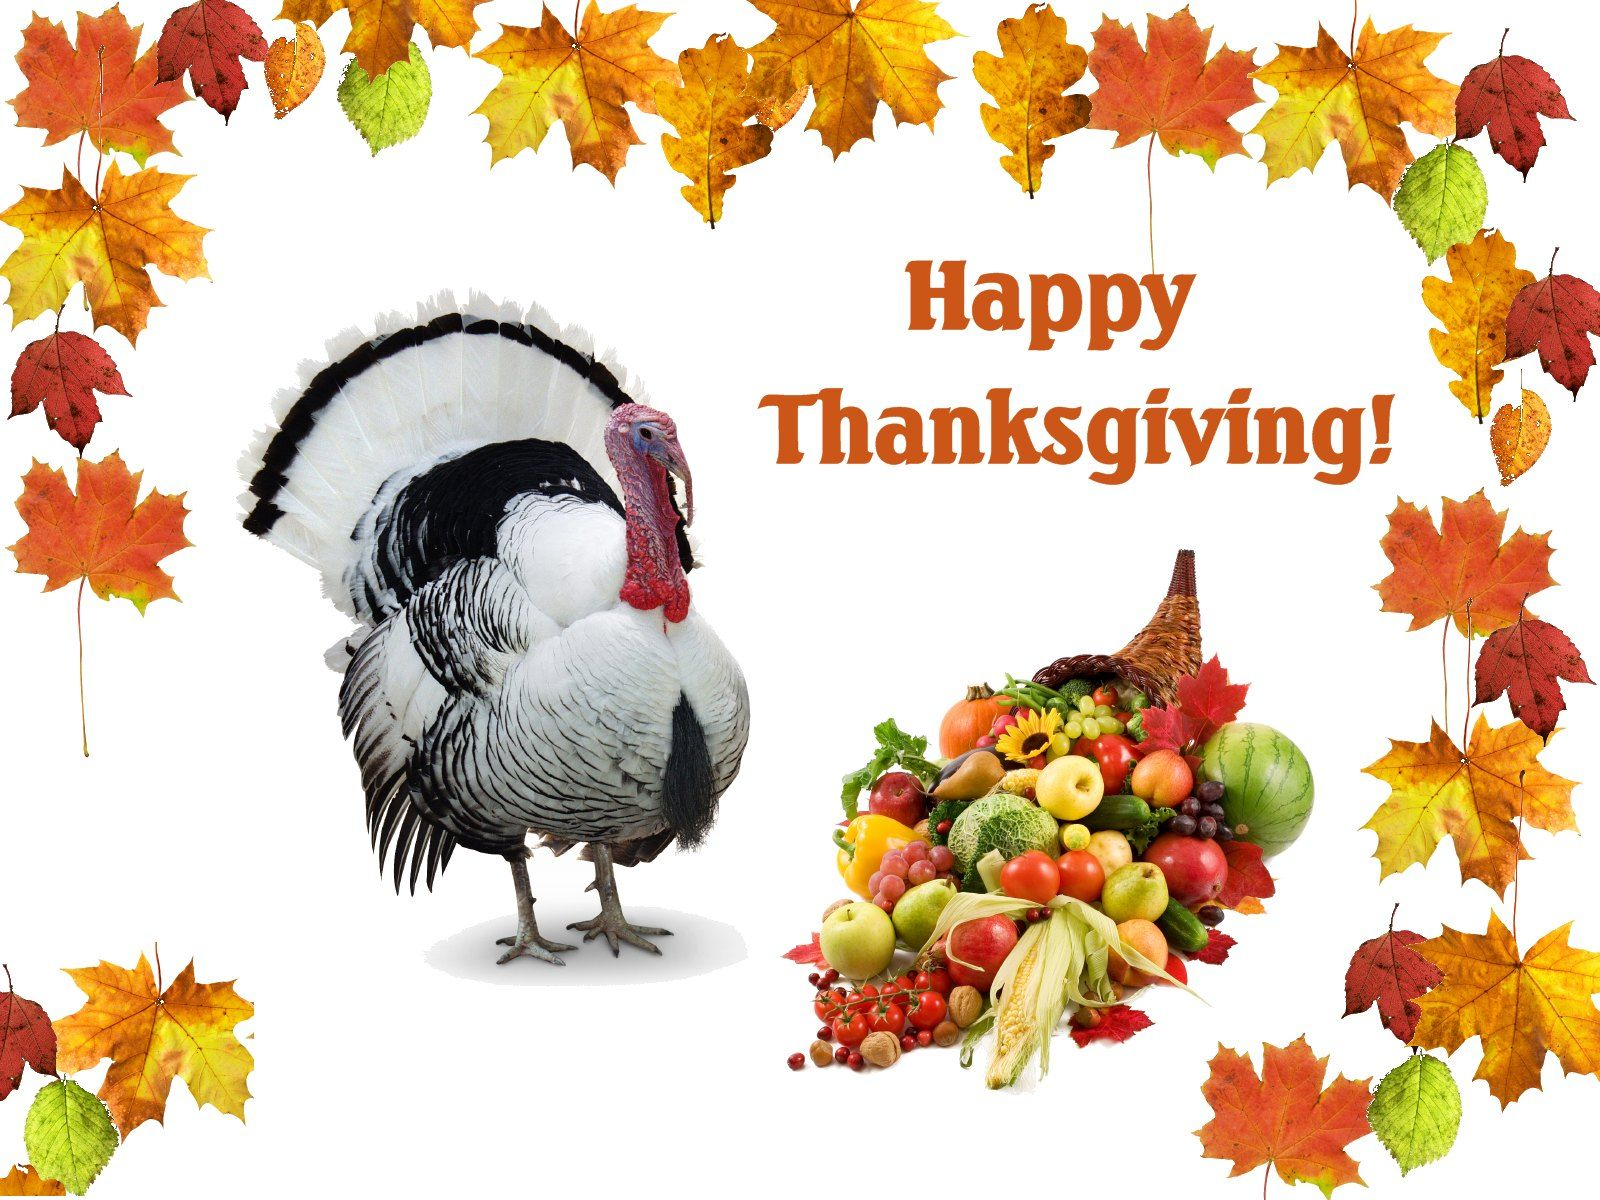 3D Thanksgiving Wallpaper Free Download 3D Thanksgiving HD Backgrounds